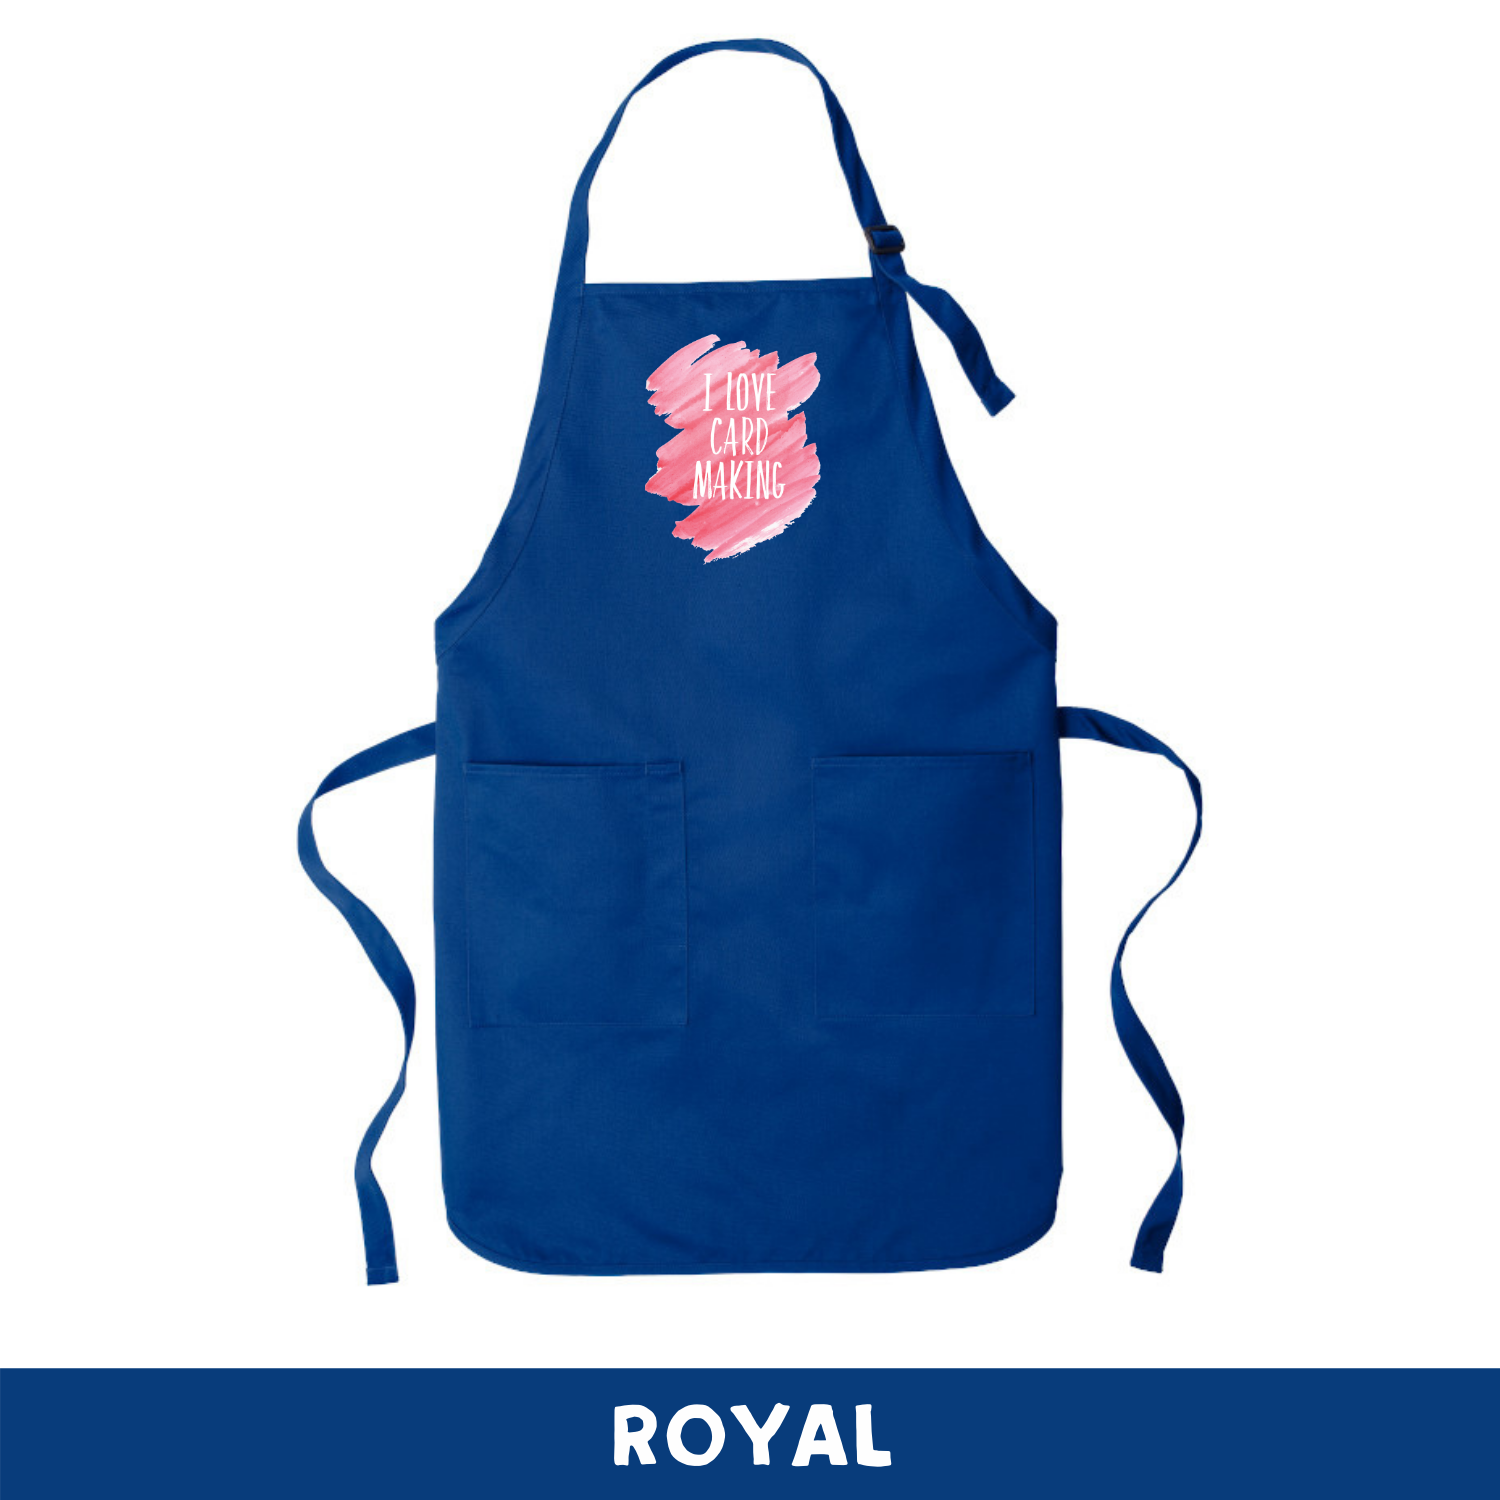 Royal - Apron - I Love Cardmaking